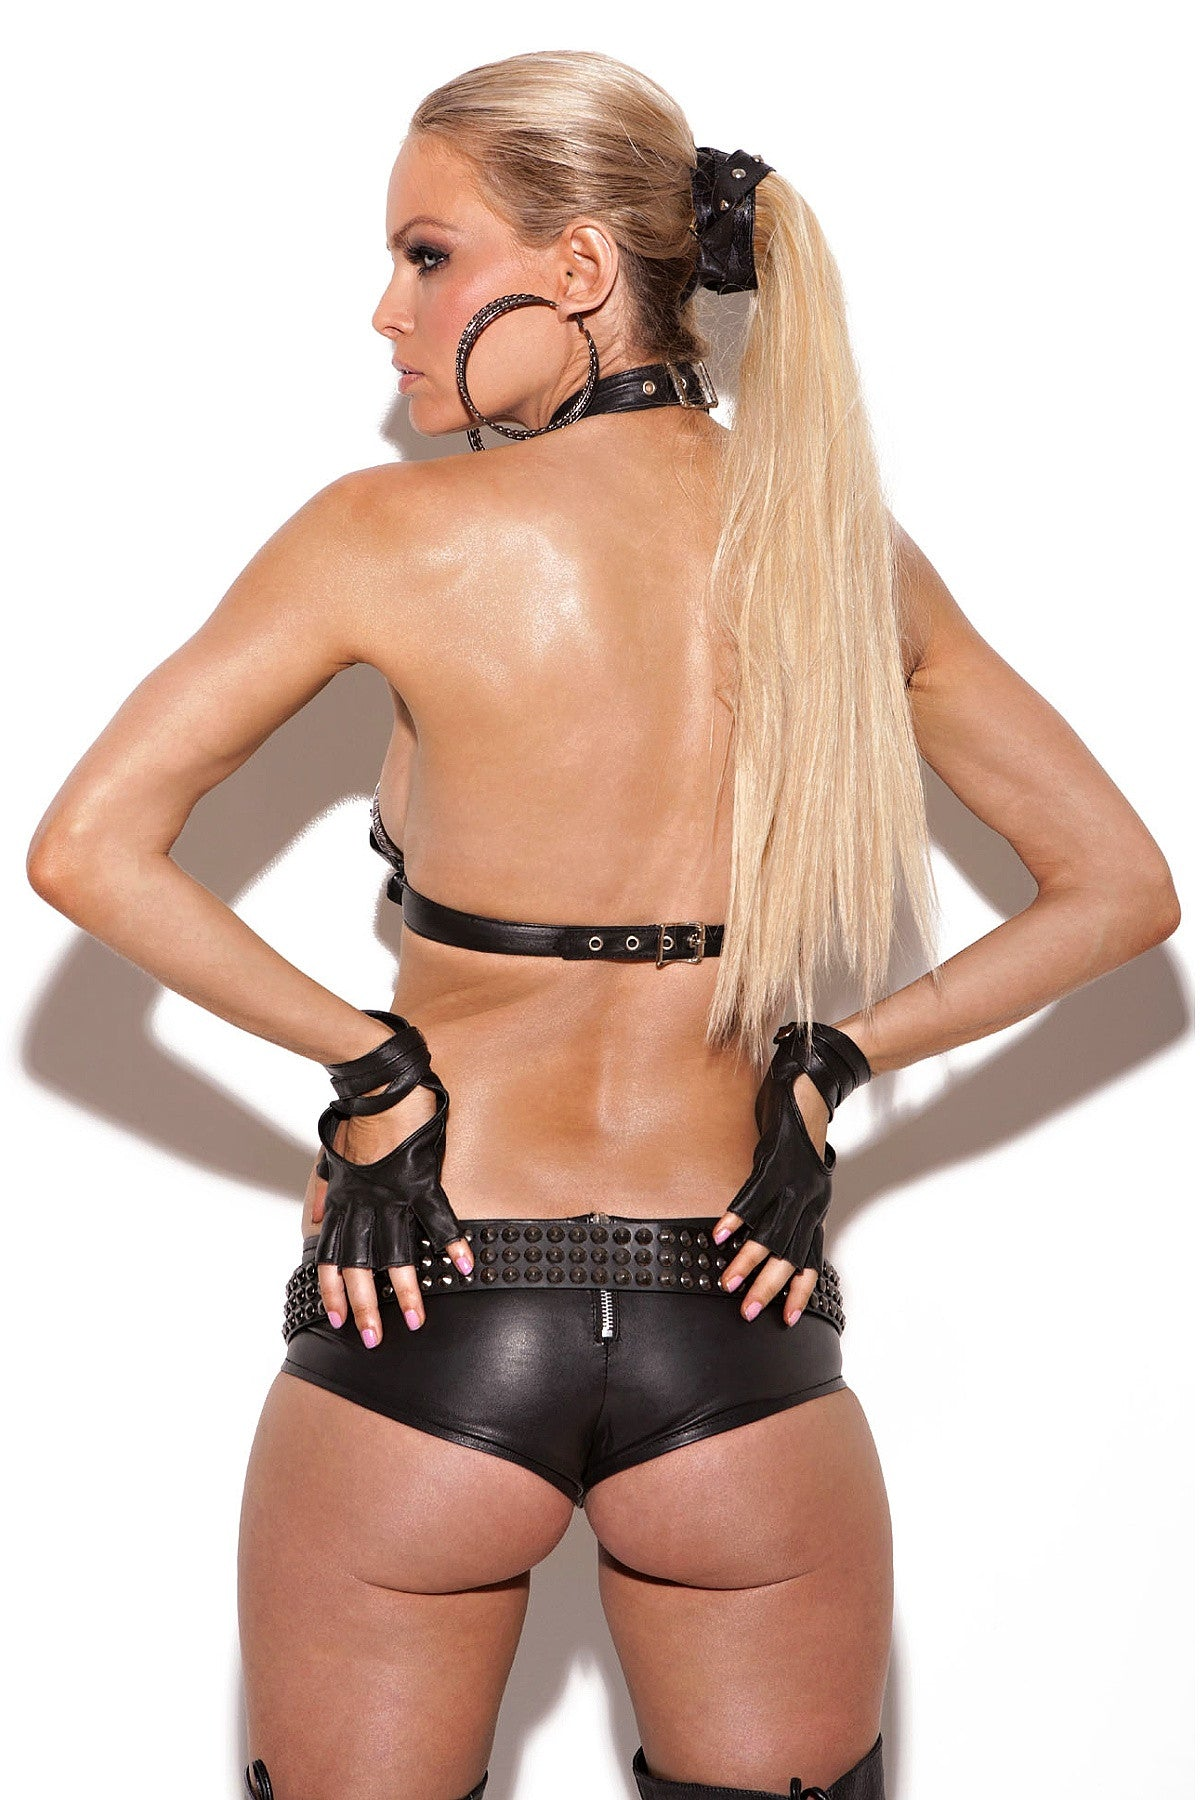 L7134 Leather booty shorts - Sexylingerieland  - 2